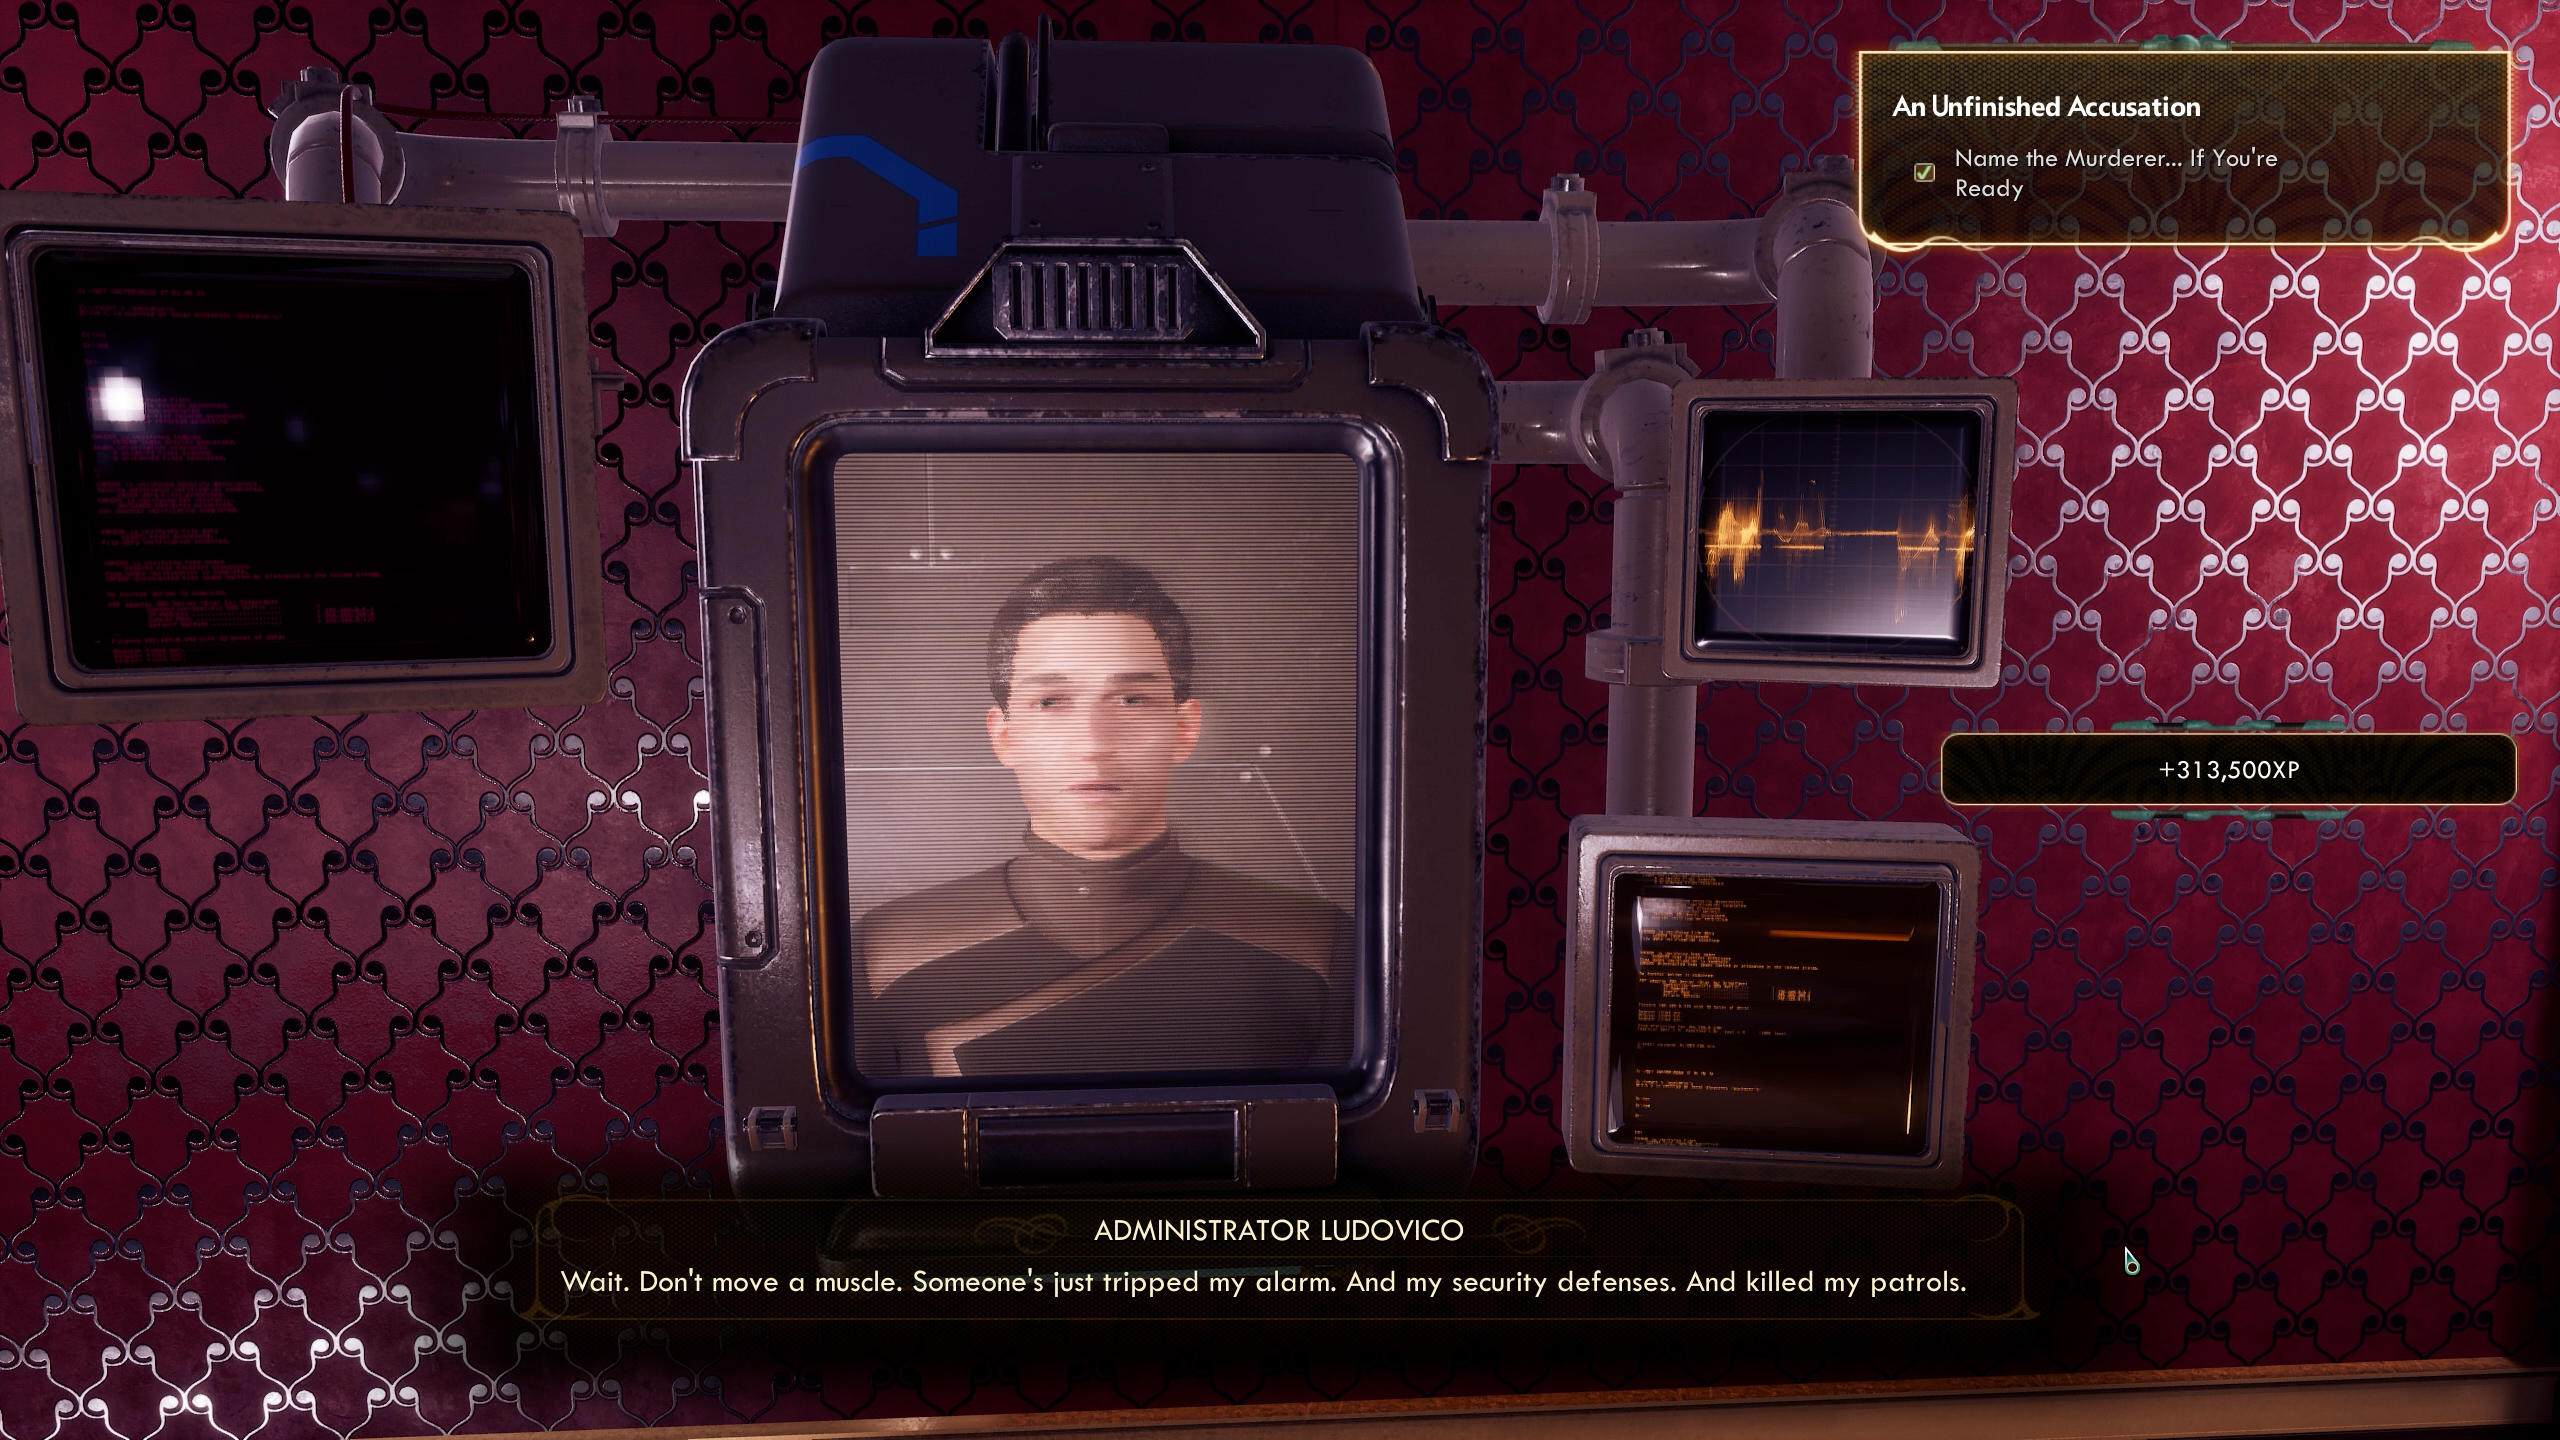 How to complete An Unfinished Accusation - The Outer Worlds: Murder on Eridanos